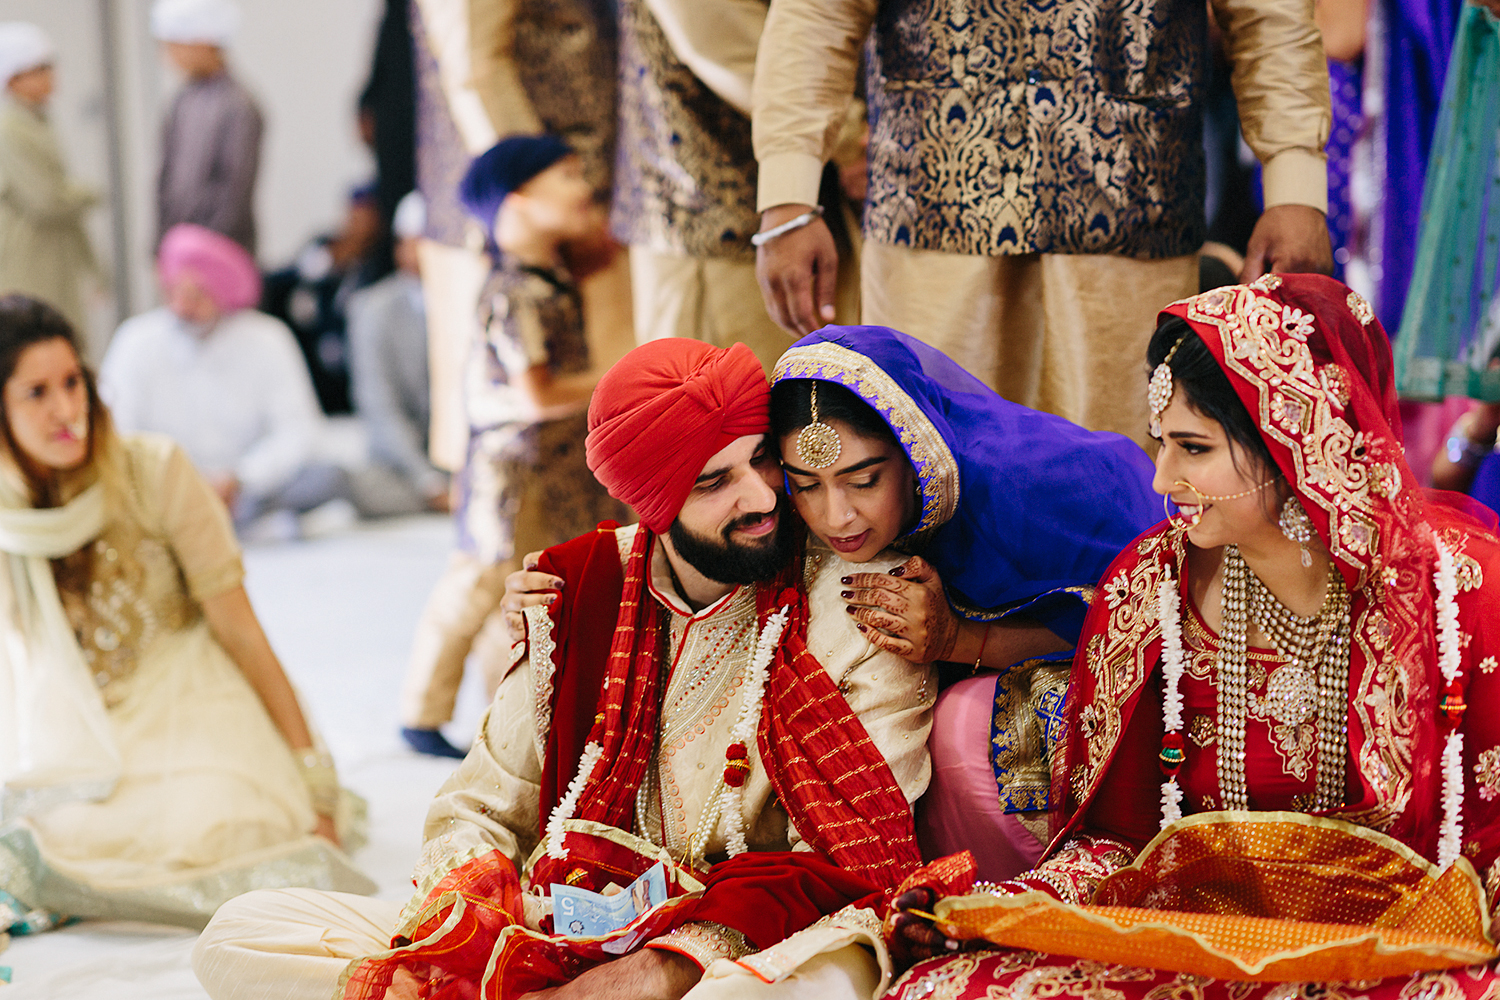 Toronto's-Best-Film-Wedding-Photographers-Multicultural-wedding-specialty-ontario-port-perry-ceremony-at-temple-candid-documentary-film-analog-photography-sikh-ceremony-proud-friends.jpg